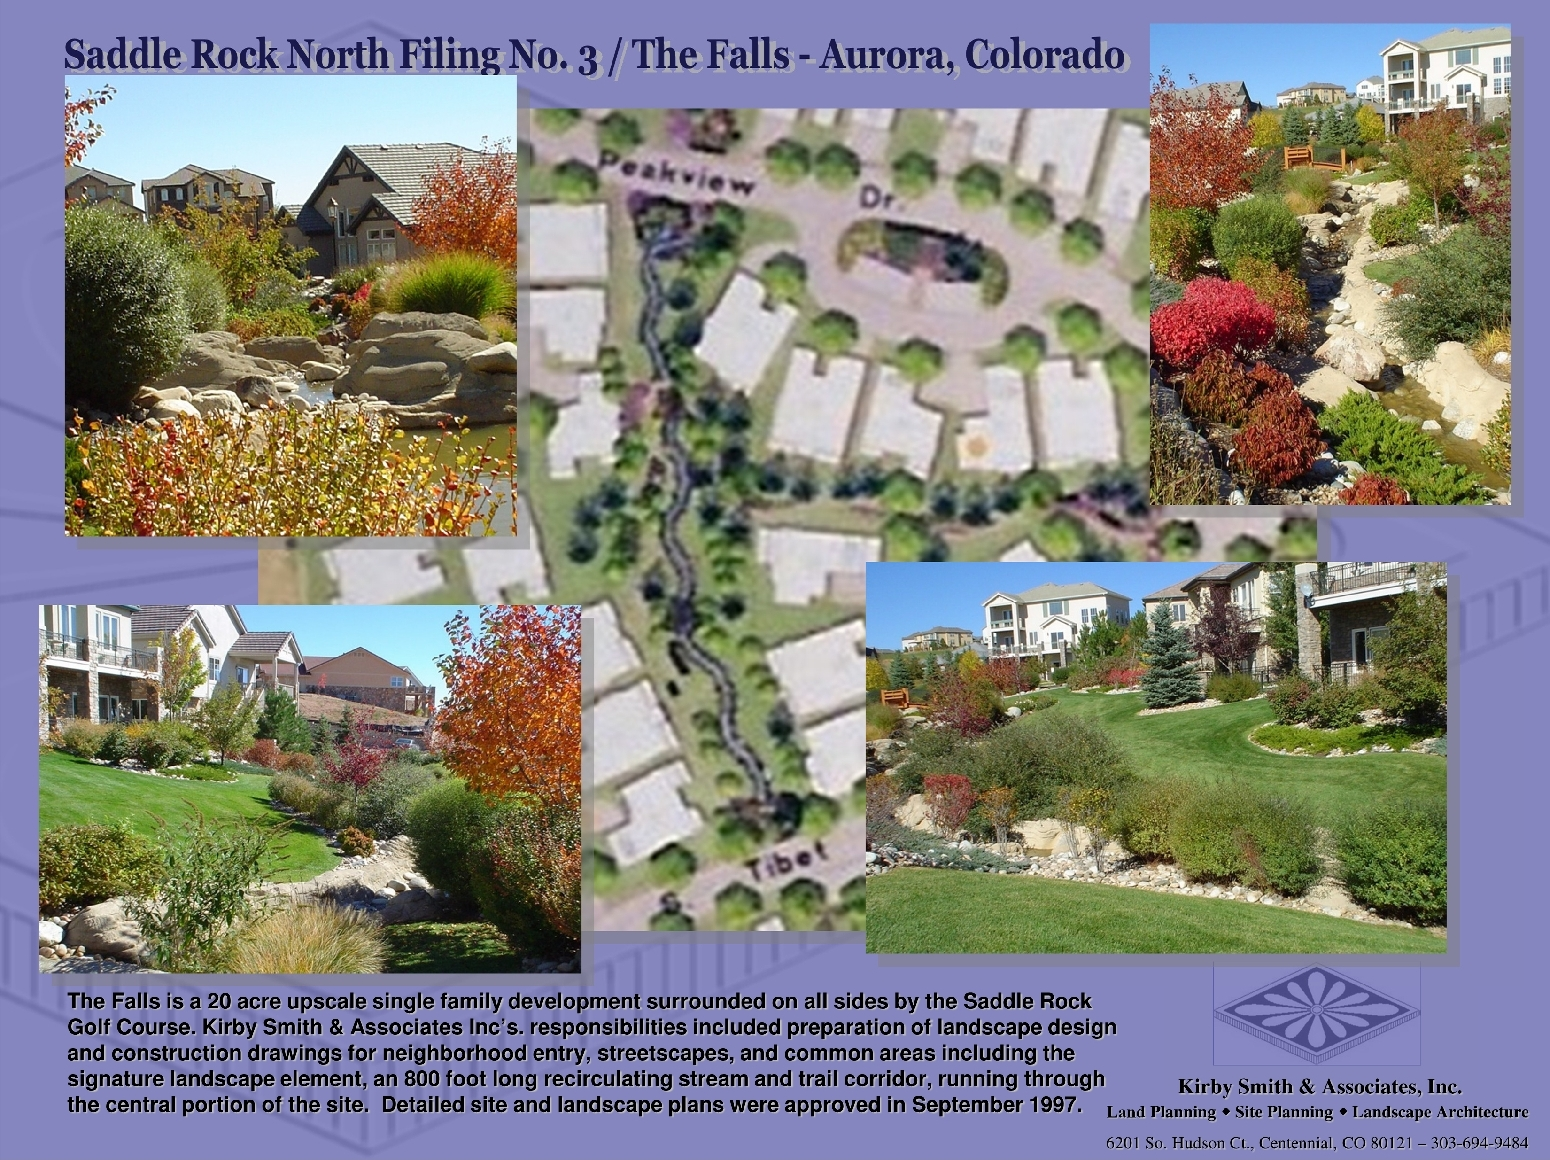 The Falls is a 20 acre upscale single family development surrounded on all sides by the Saddle Rock Golf Course. KSA, Inc's. responsibilities included preparation of landscape design and construction drawings for neighborhood entry, streetscapes, and common areas including the signature landscape element, an 800 foot long recirculating stream and trail corridor, running through the central portion of the site.